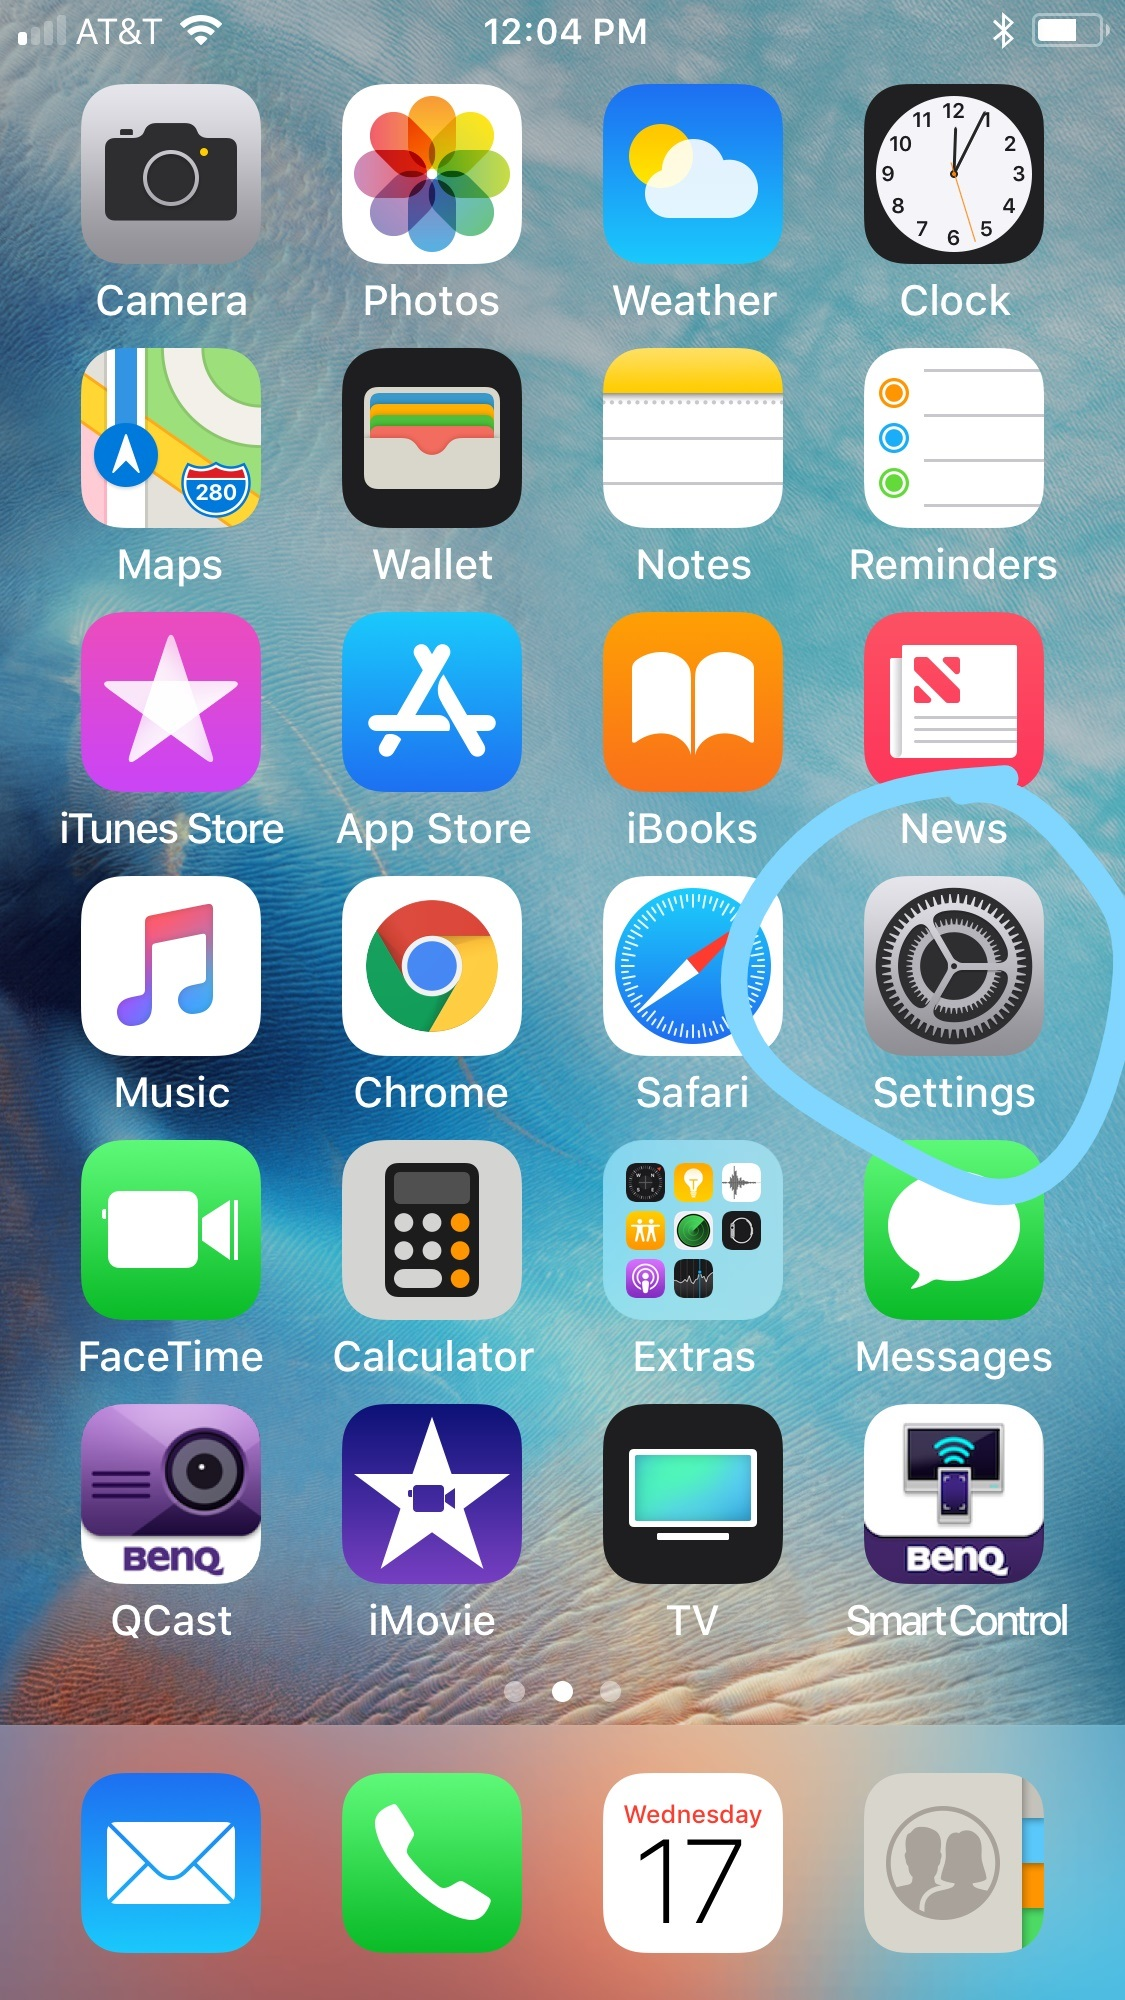 How To Change The Home Screen Wallpaper Iphone Sdm Foundation